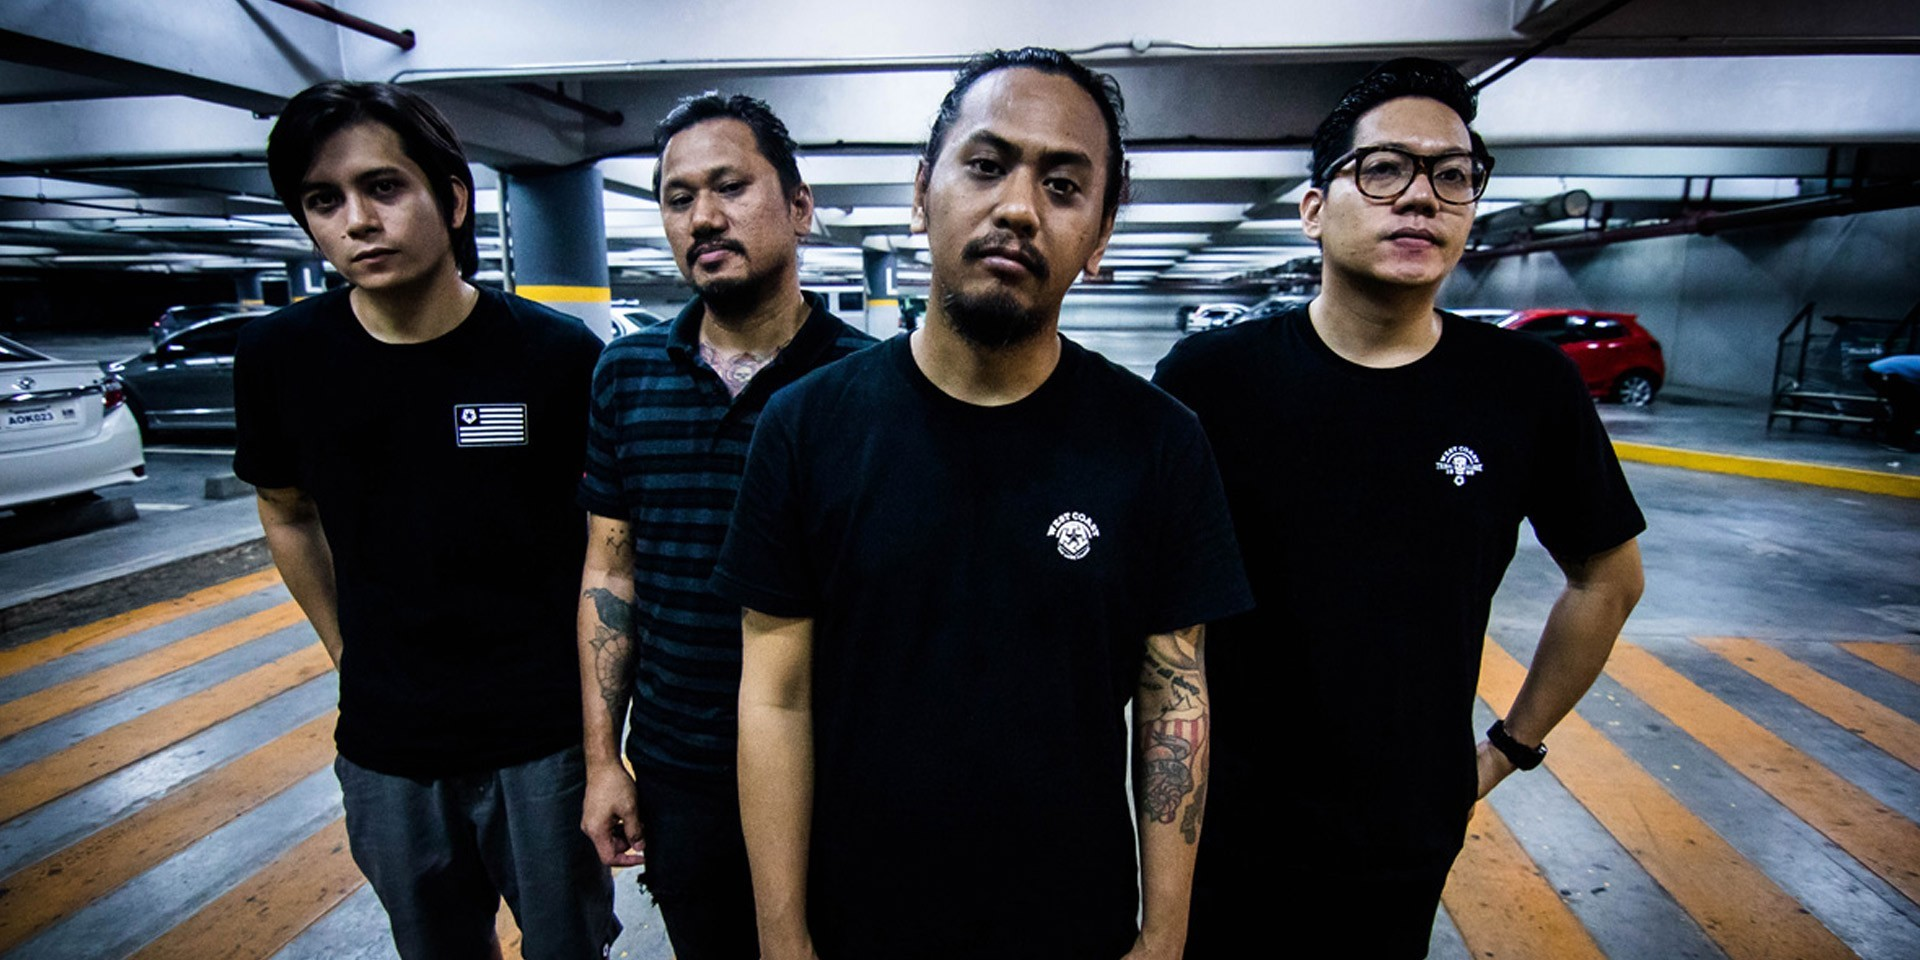 Typecast to hold music video launch for new single 'Perfect Posture'